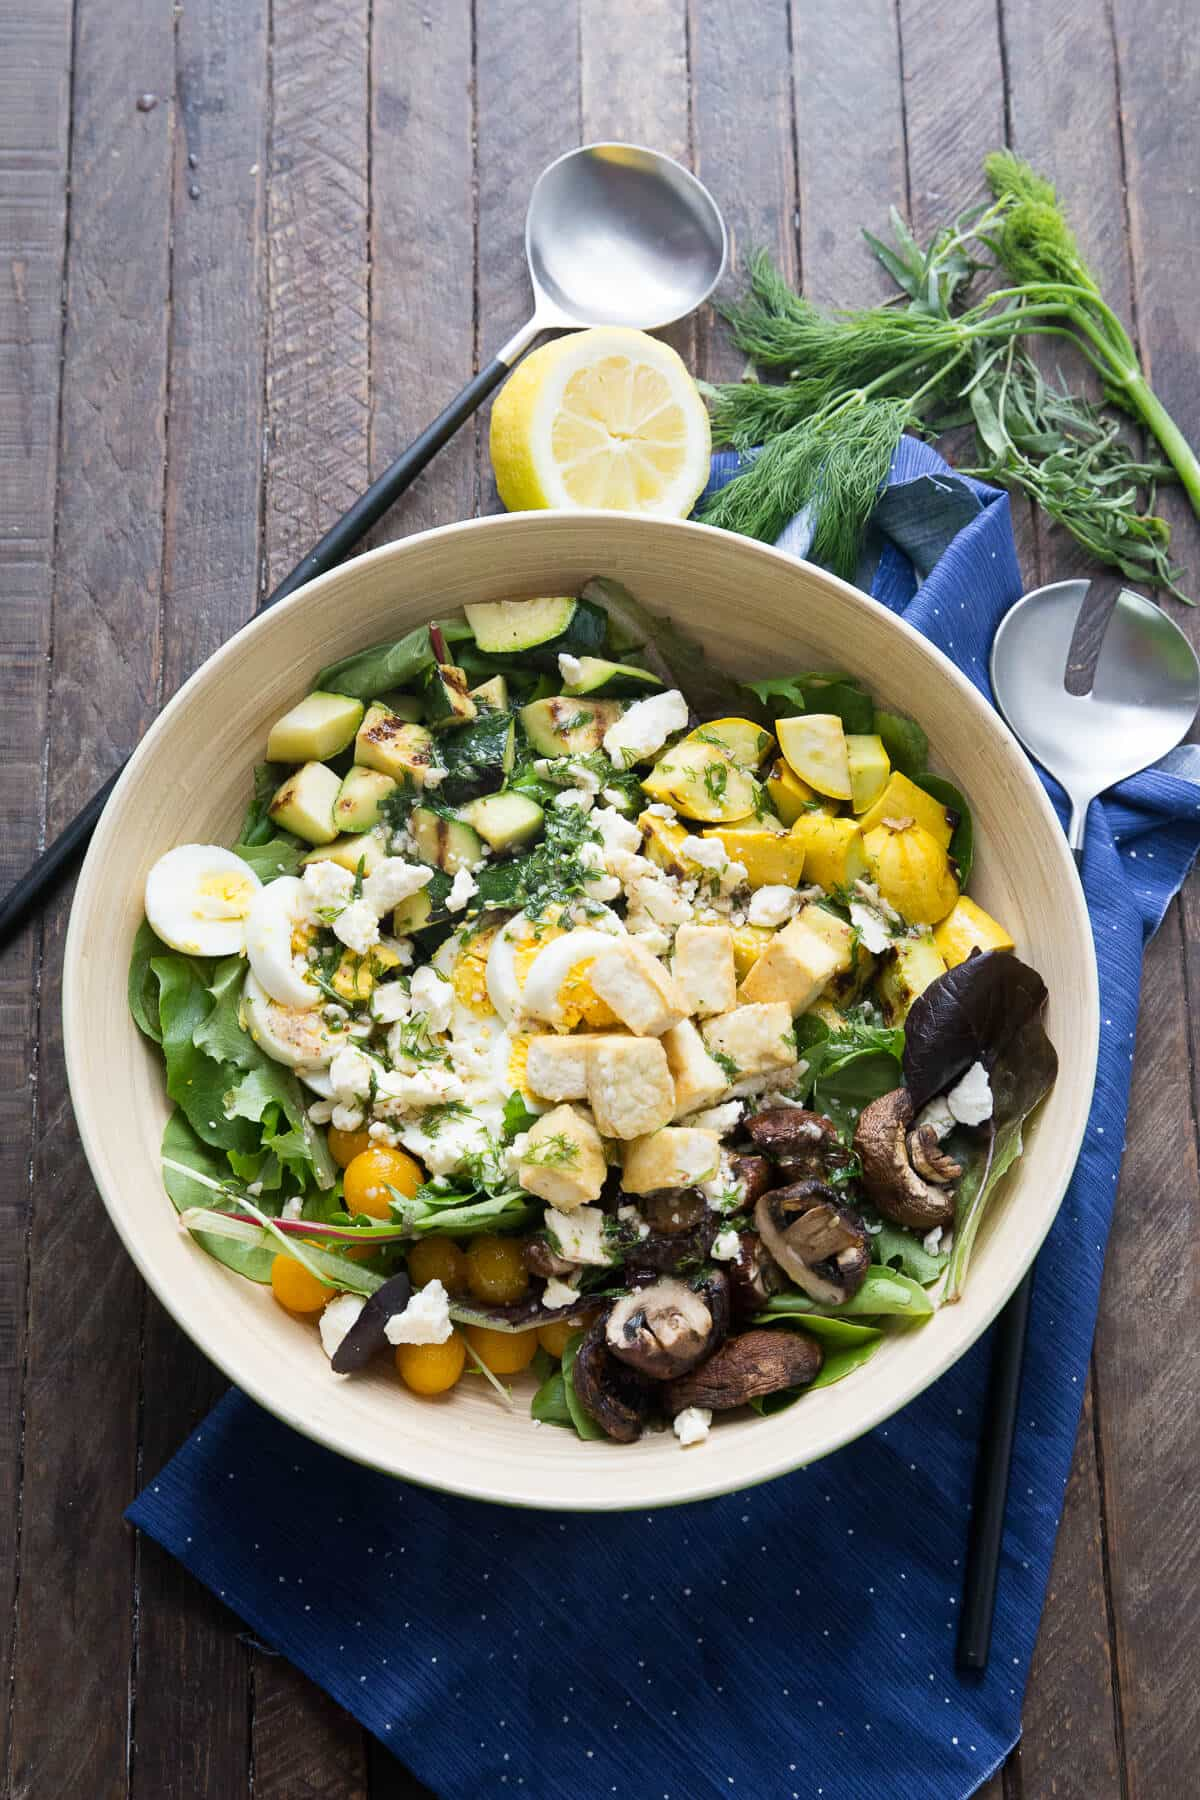 Love Cobb salads? You have to try this lean veggie-packed version for a change! I bet you will love it!